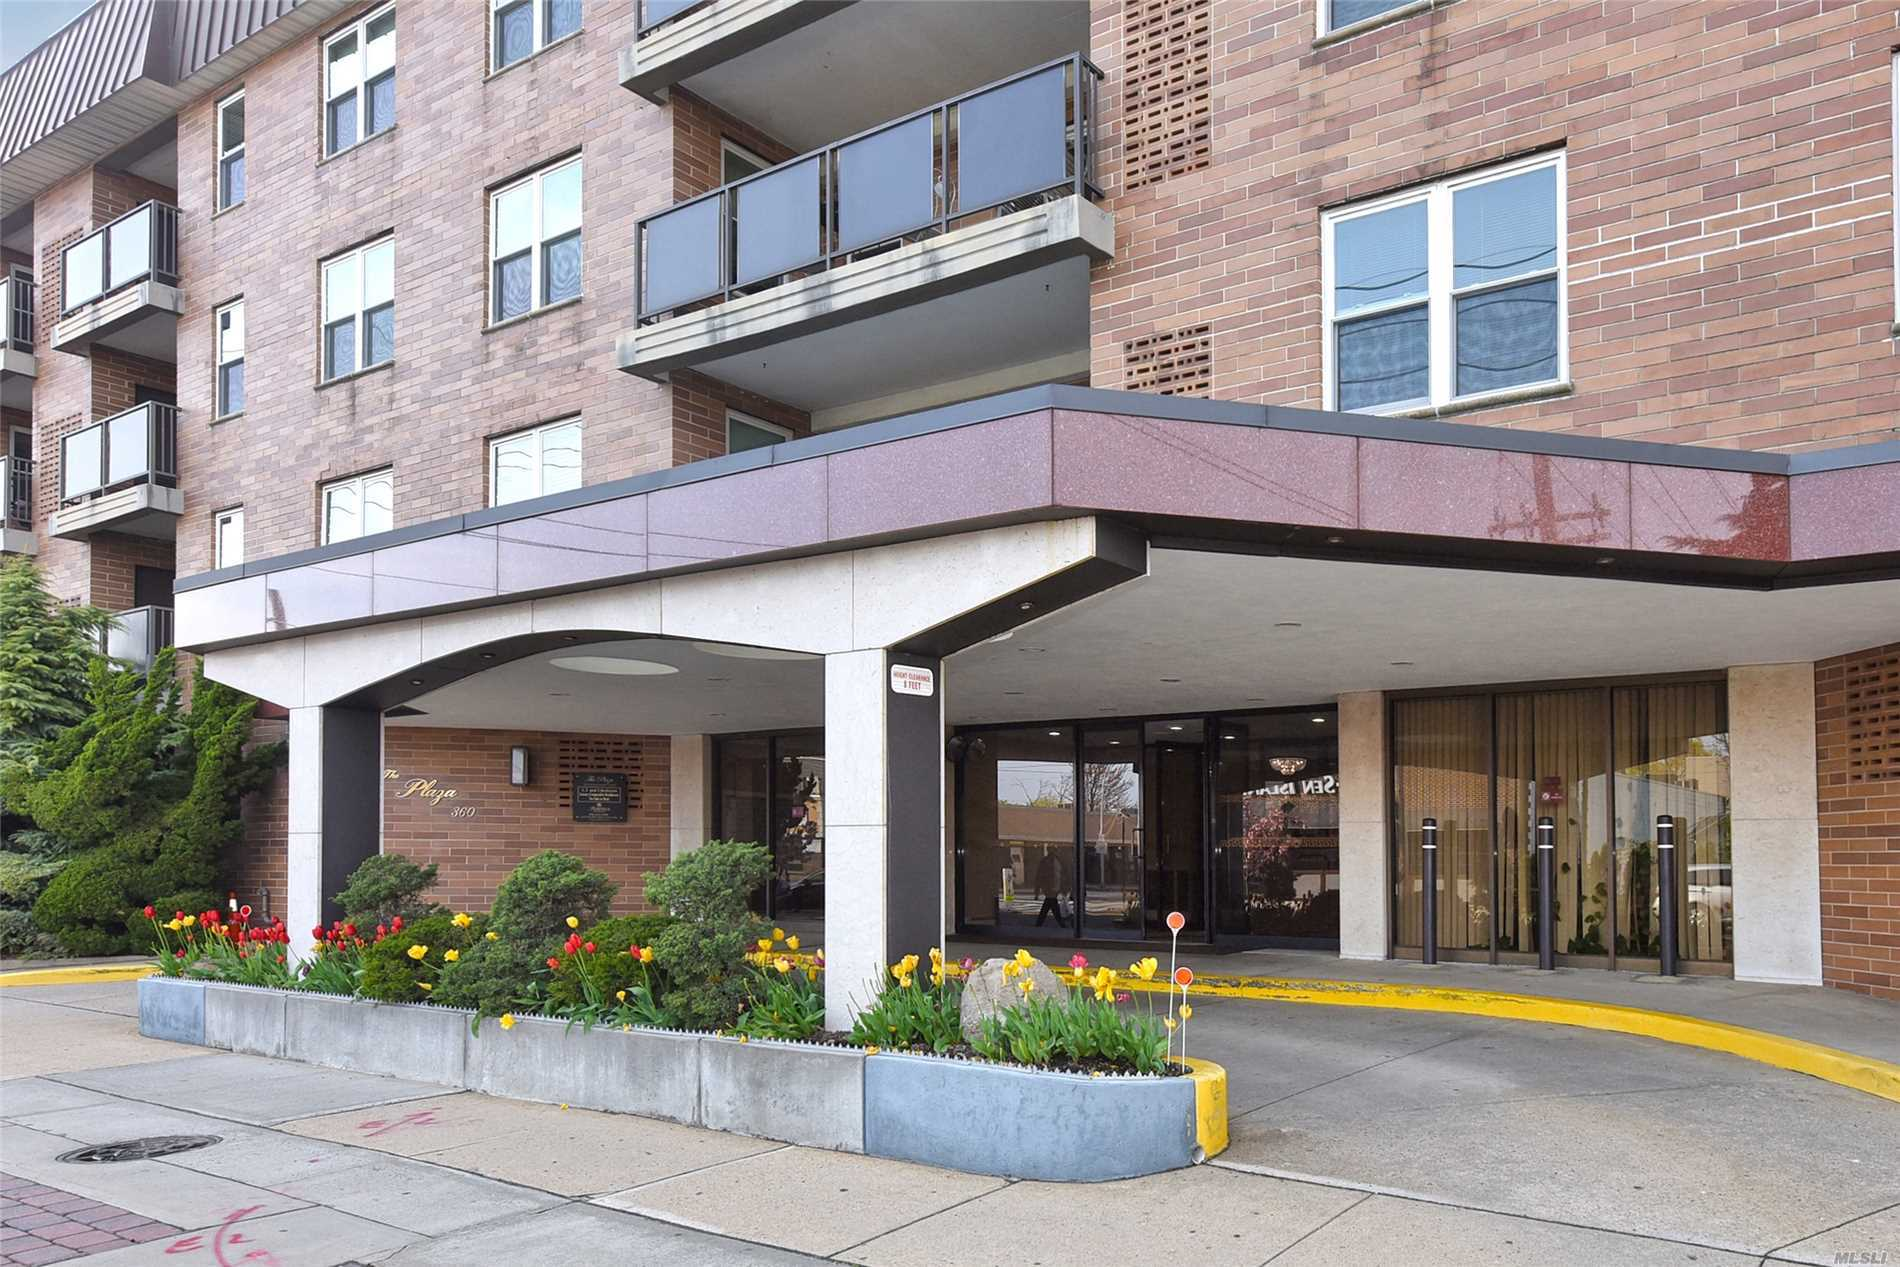 Spacious 2 BR, 2 Bth Coop in Luxury Doorman Building with Elevator. Entry Hall, LR, FDR & EIK. Large Mstr Suite w/ WIC & Bth. Quiet Location in Back of bldg Overlooking IG Pool & Patio.24 Hr Doorman, Indoor Pkg, Terrace, W/D on Each Floor Private Storage Area.ots of Closets. CAC. Near All